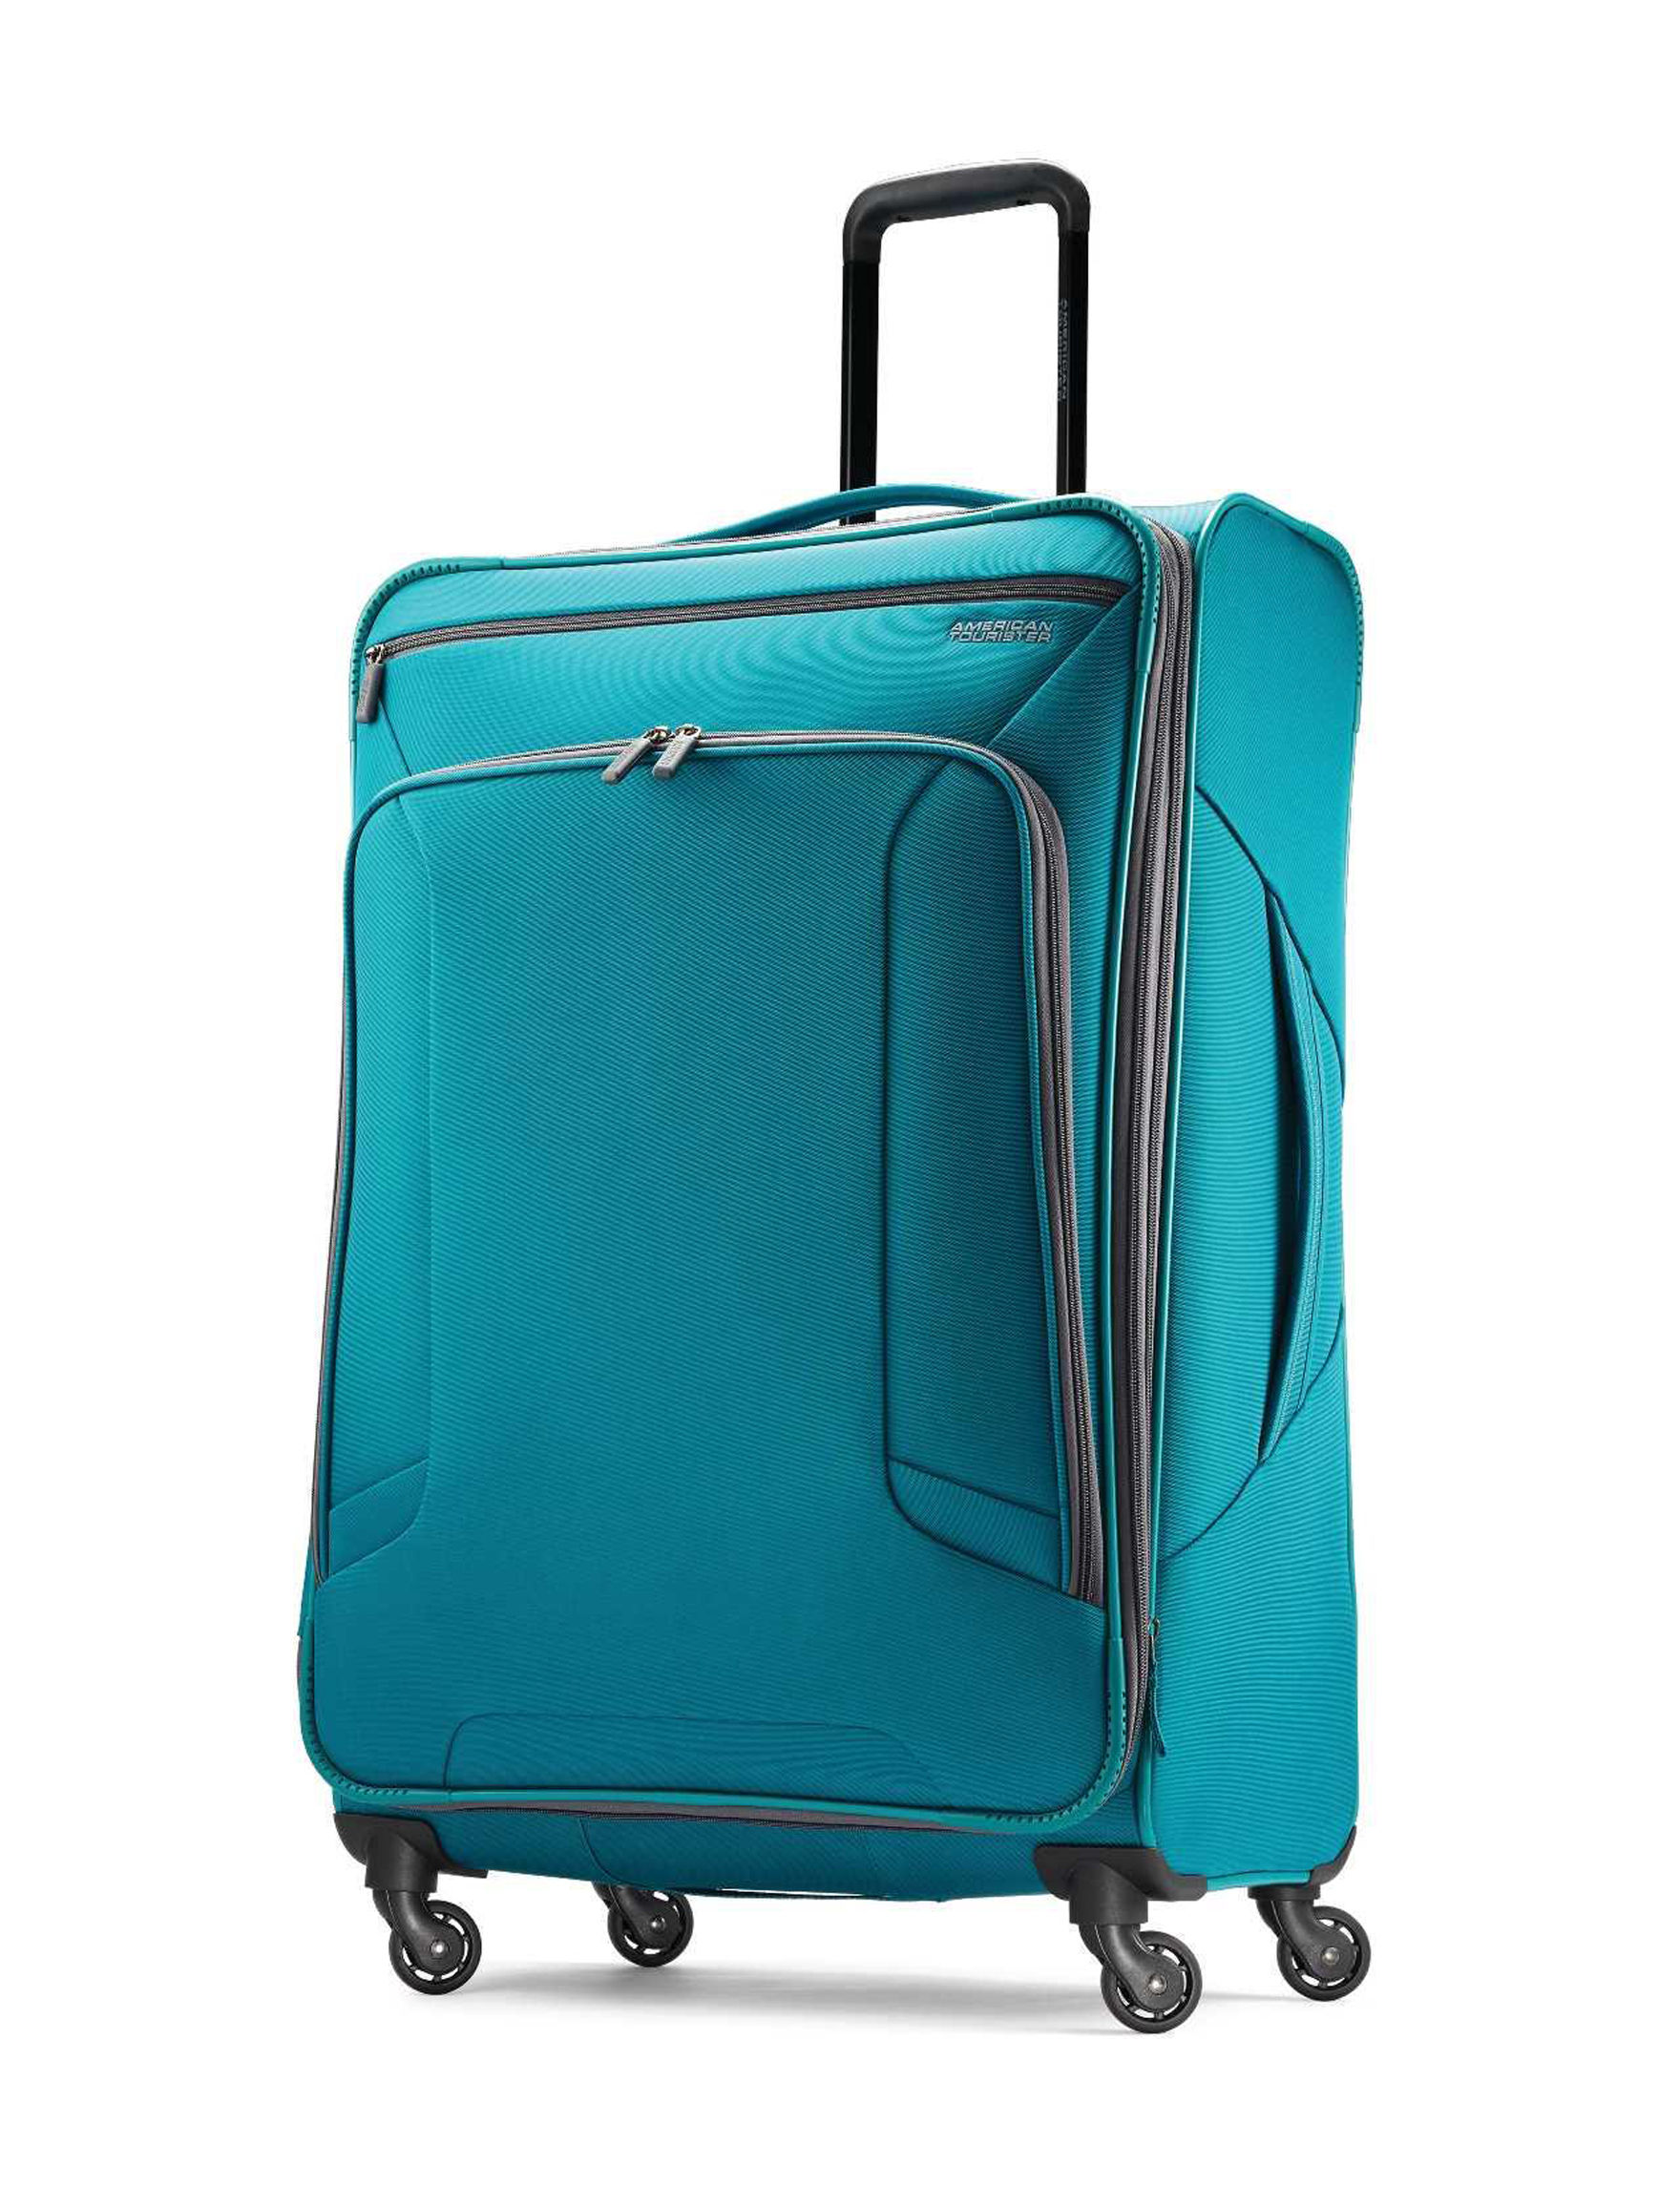 American Tourister Teal Softside Upright Spinners